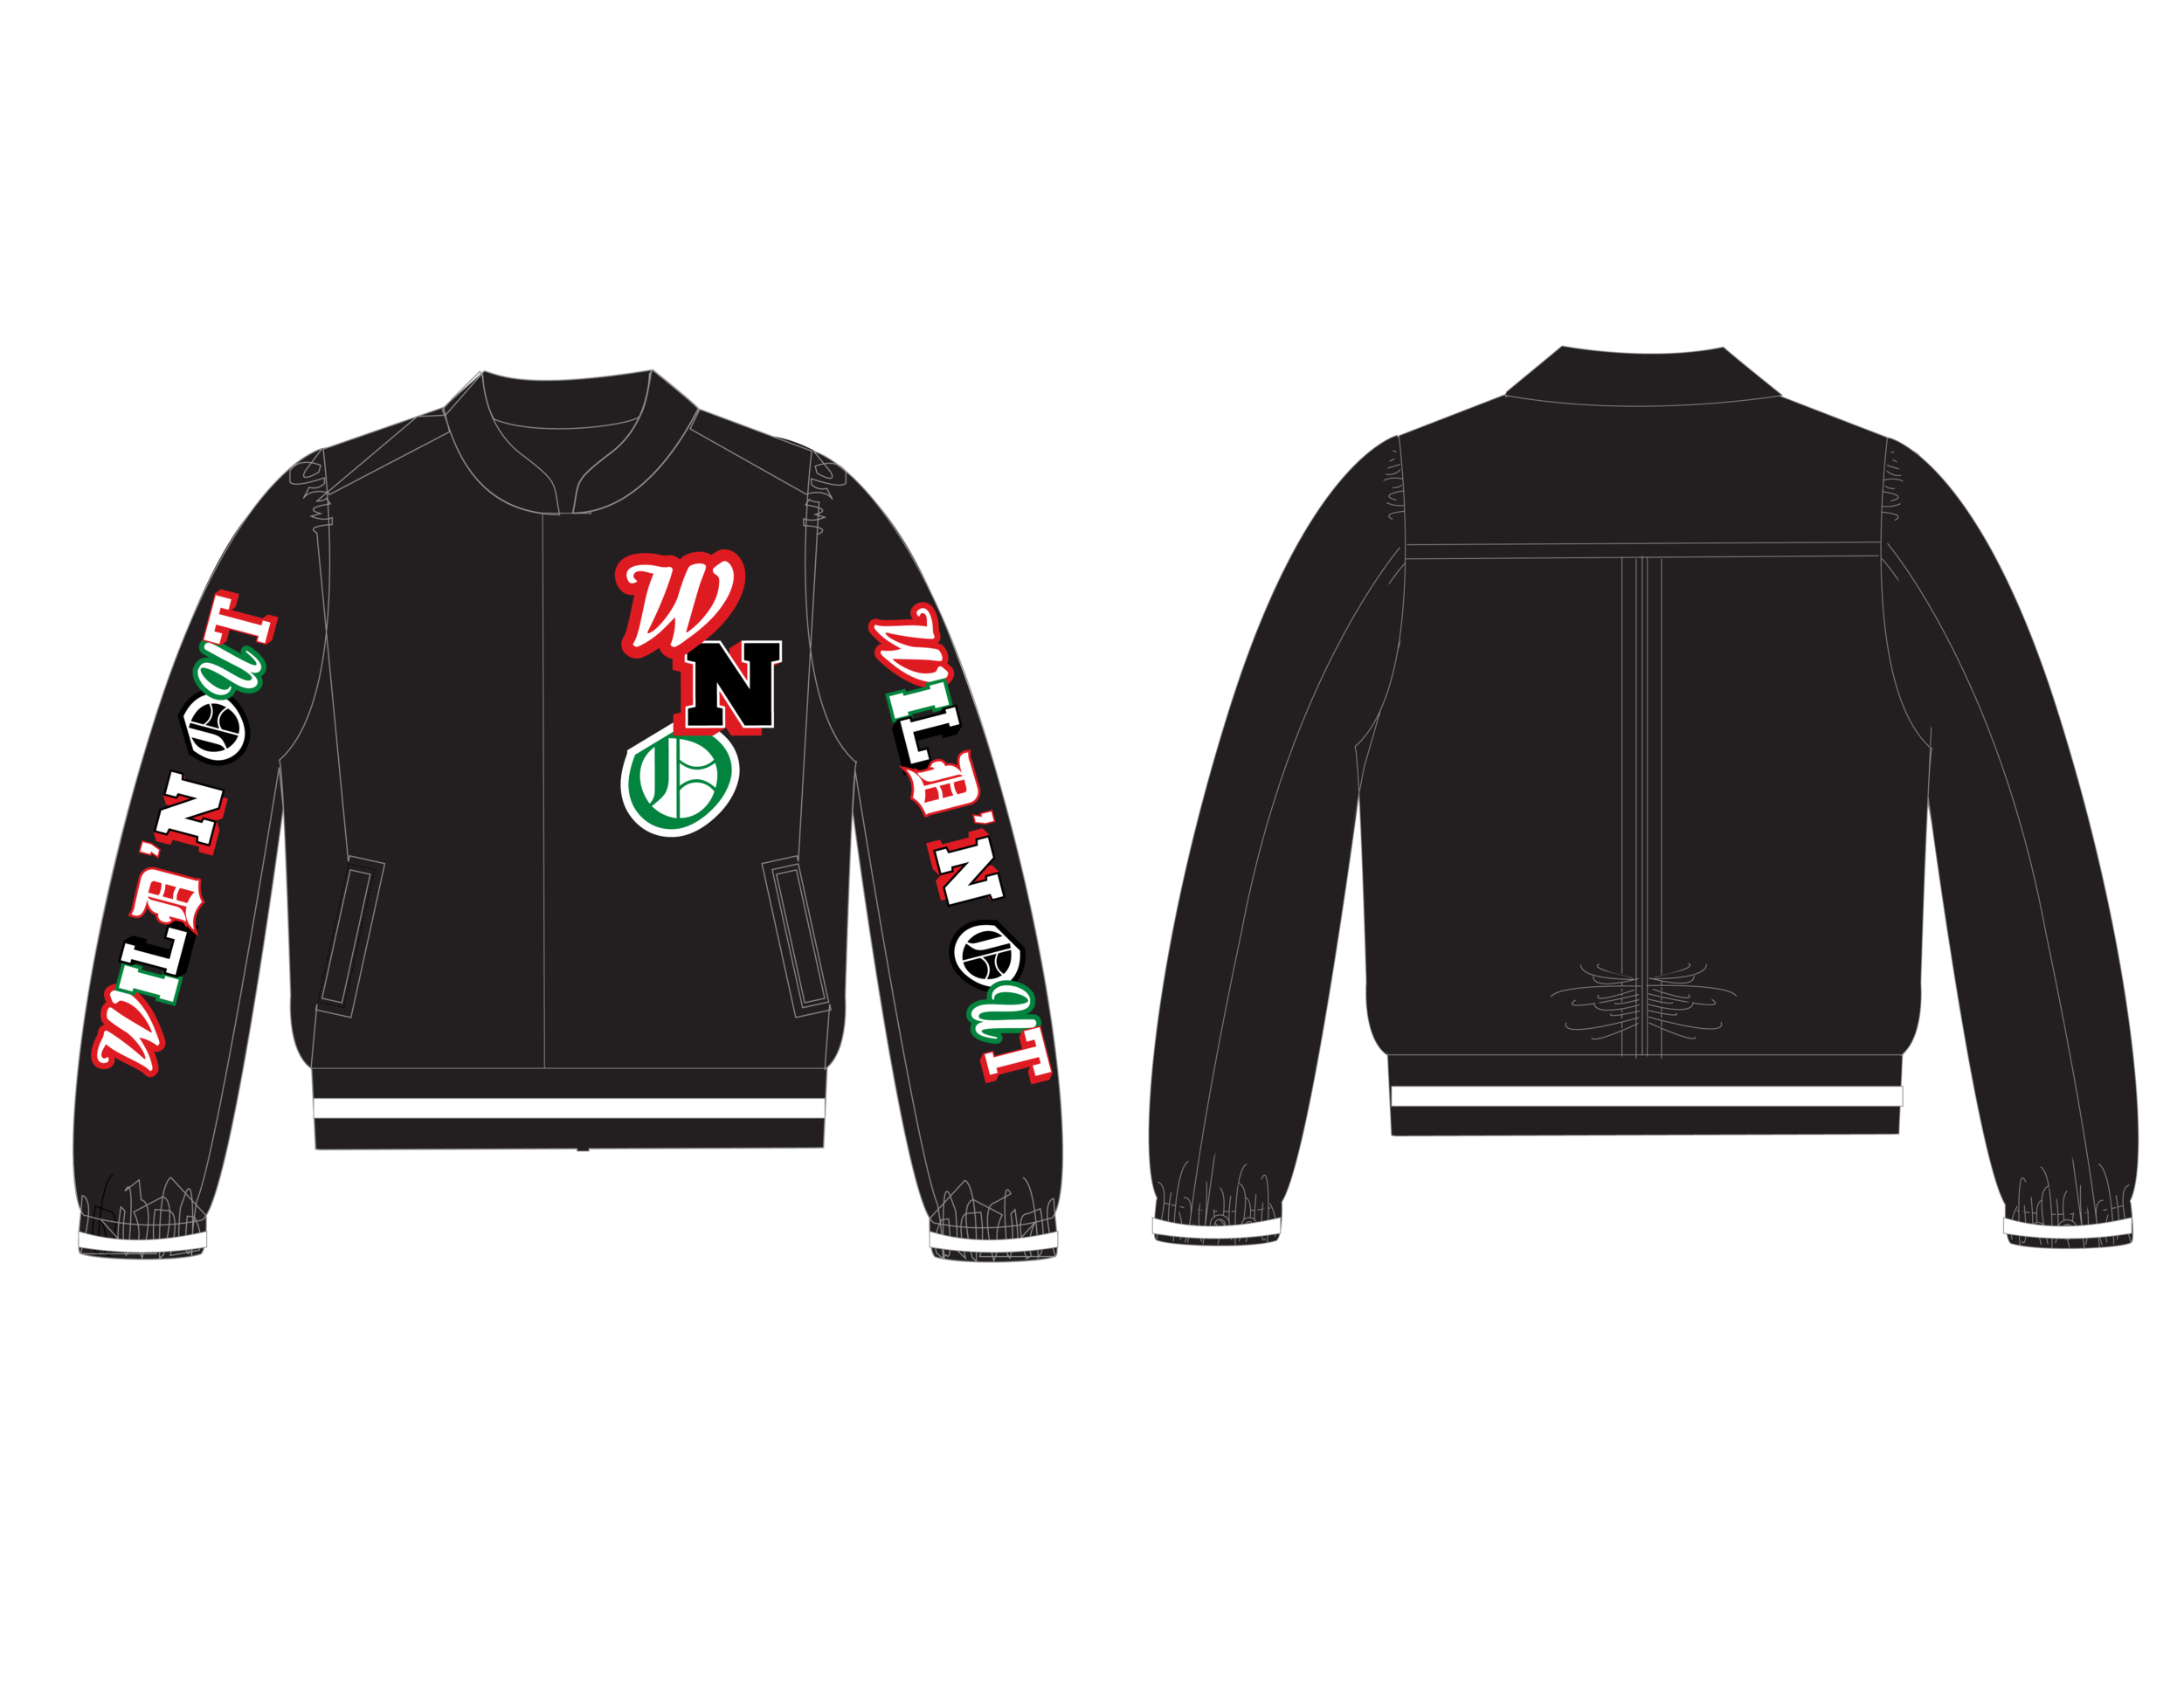 WildNOut_Jerseys [Recovered]-09.png